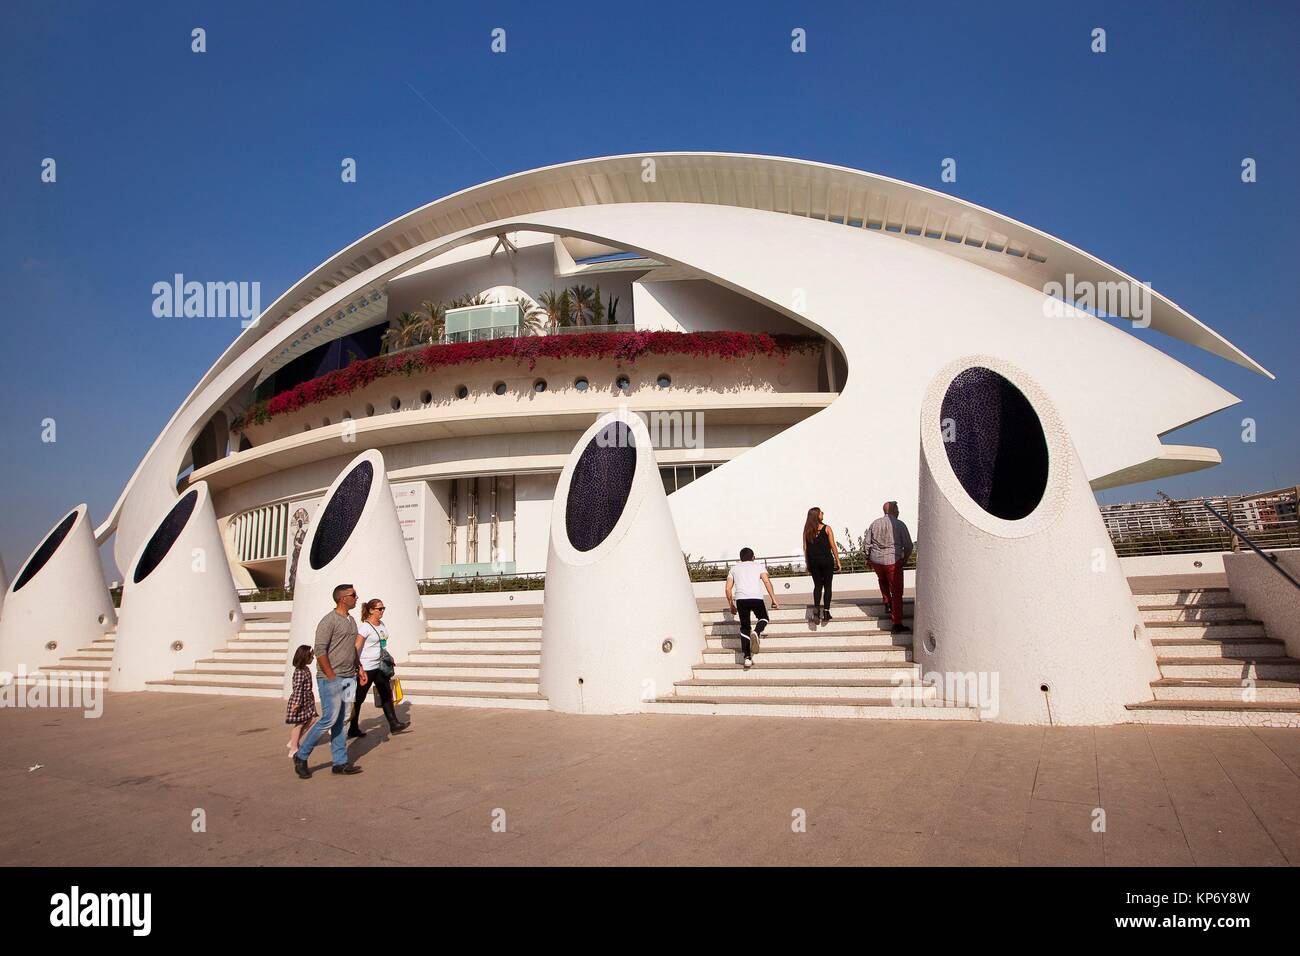 Visitors in front of the Palau de les Arts, City of Arts and